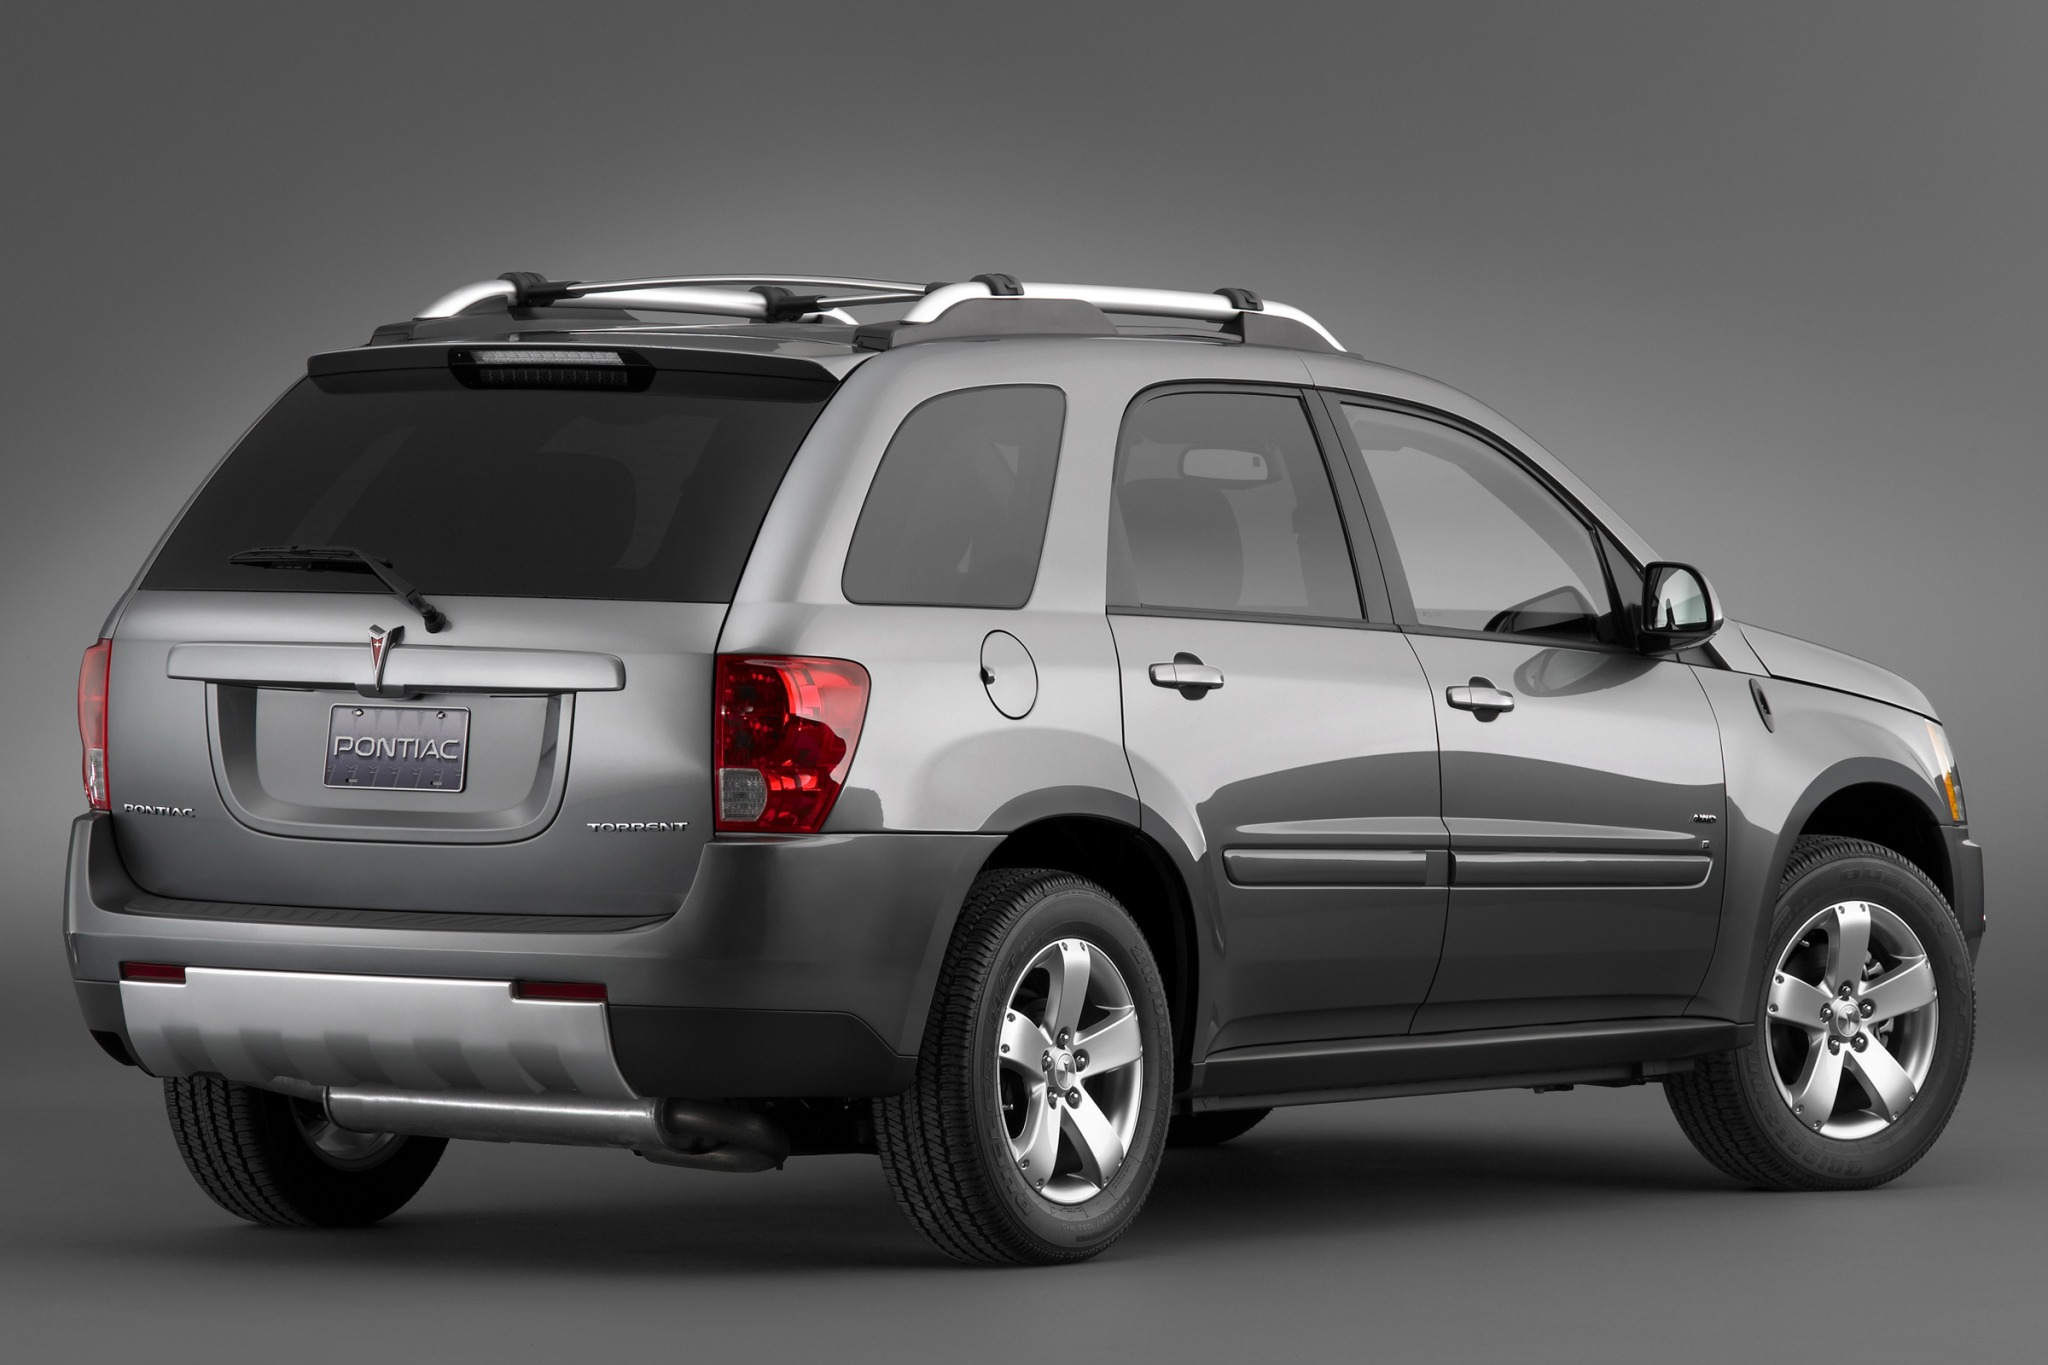 2007 Pontiac Torrent 4dr  interior #3